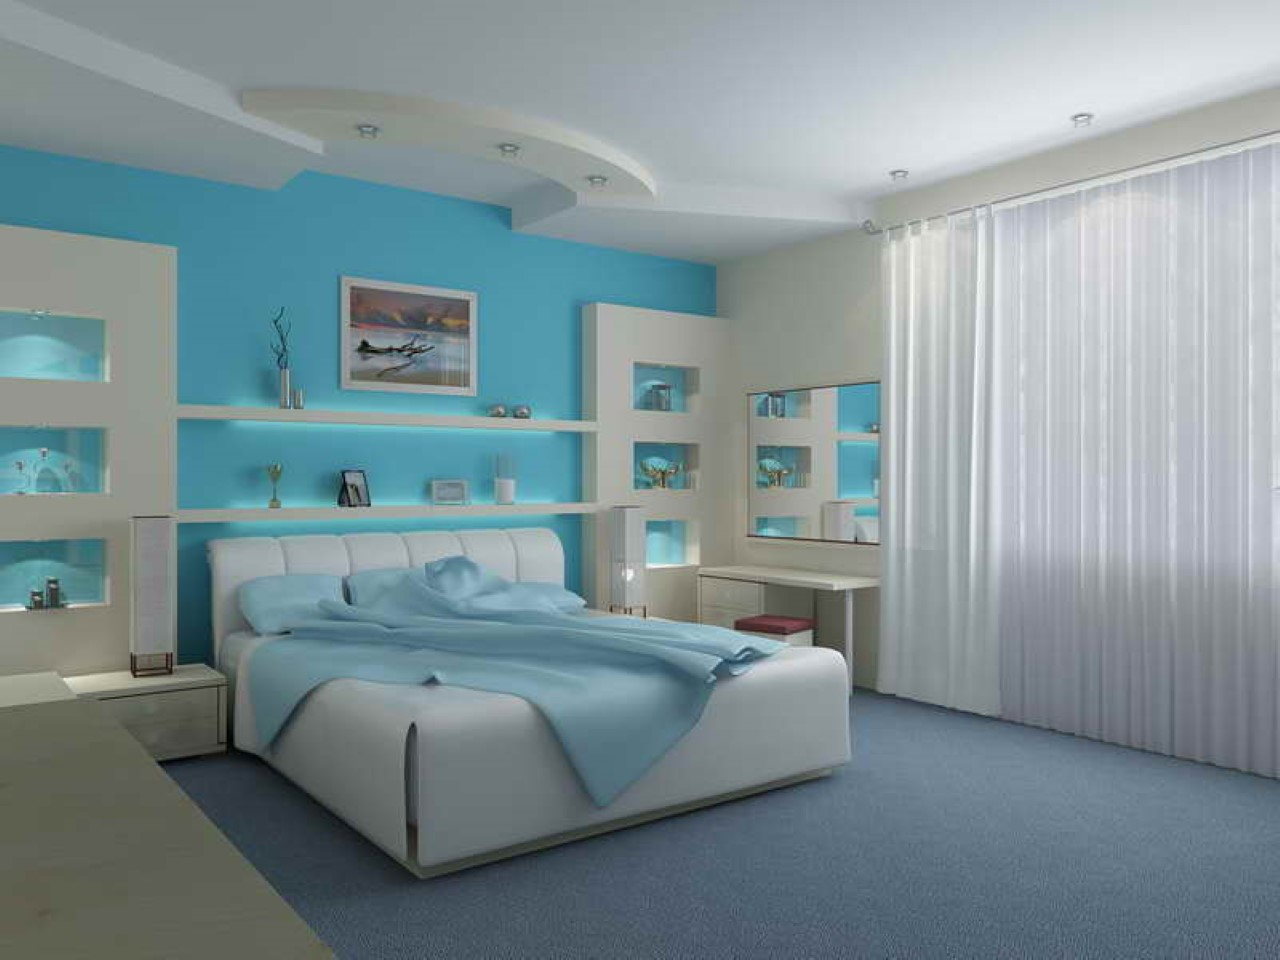 Cool Smooth Bedroom Interior With Ocean Designs (View 3 of 10)